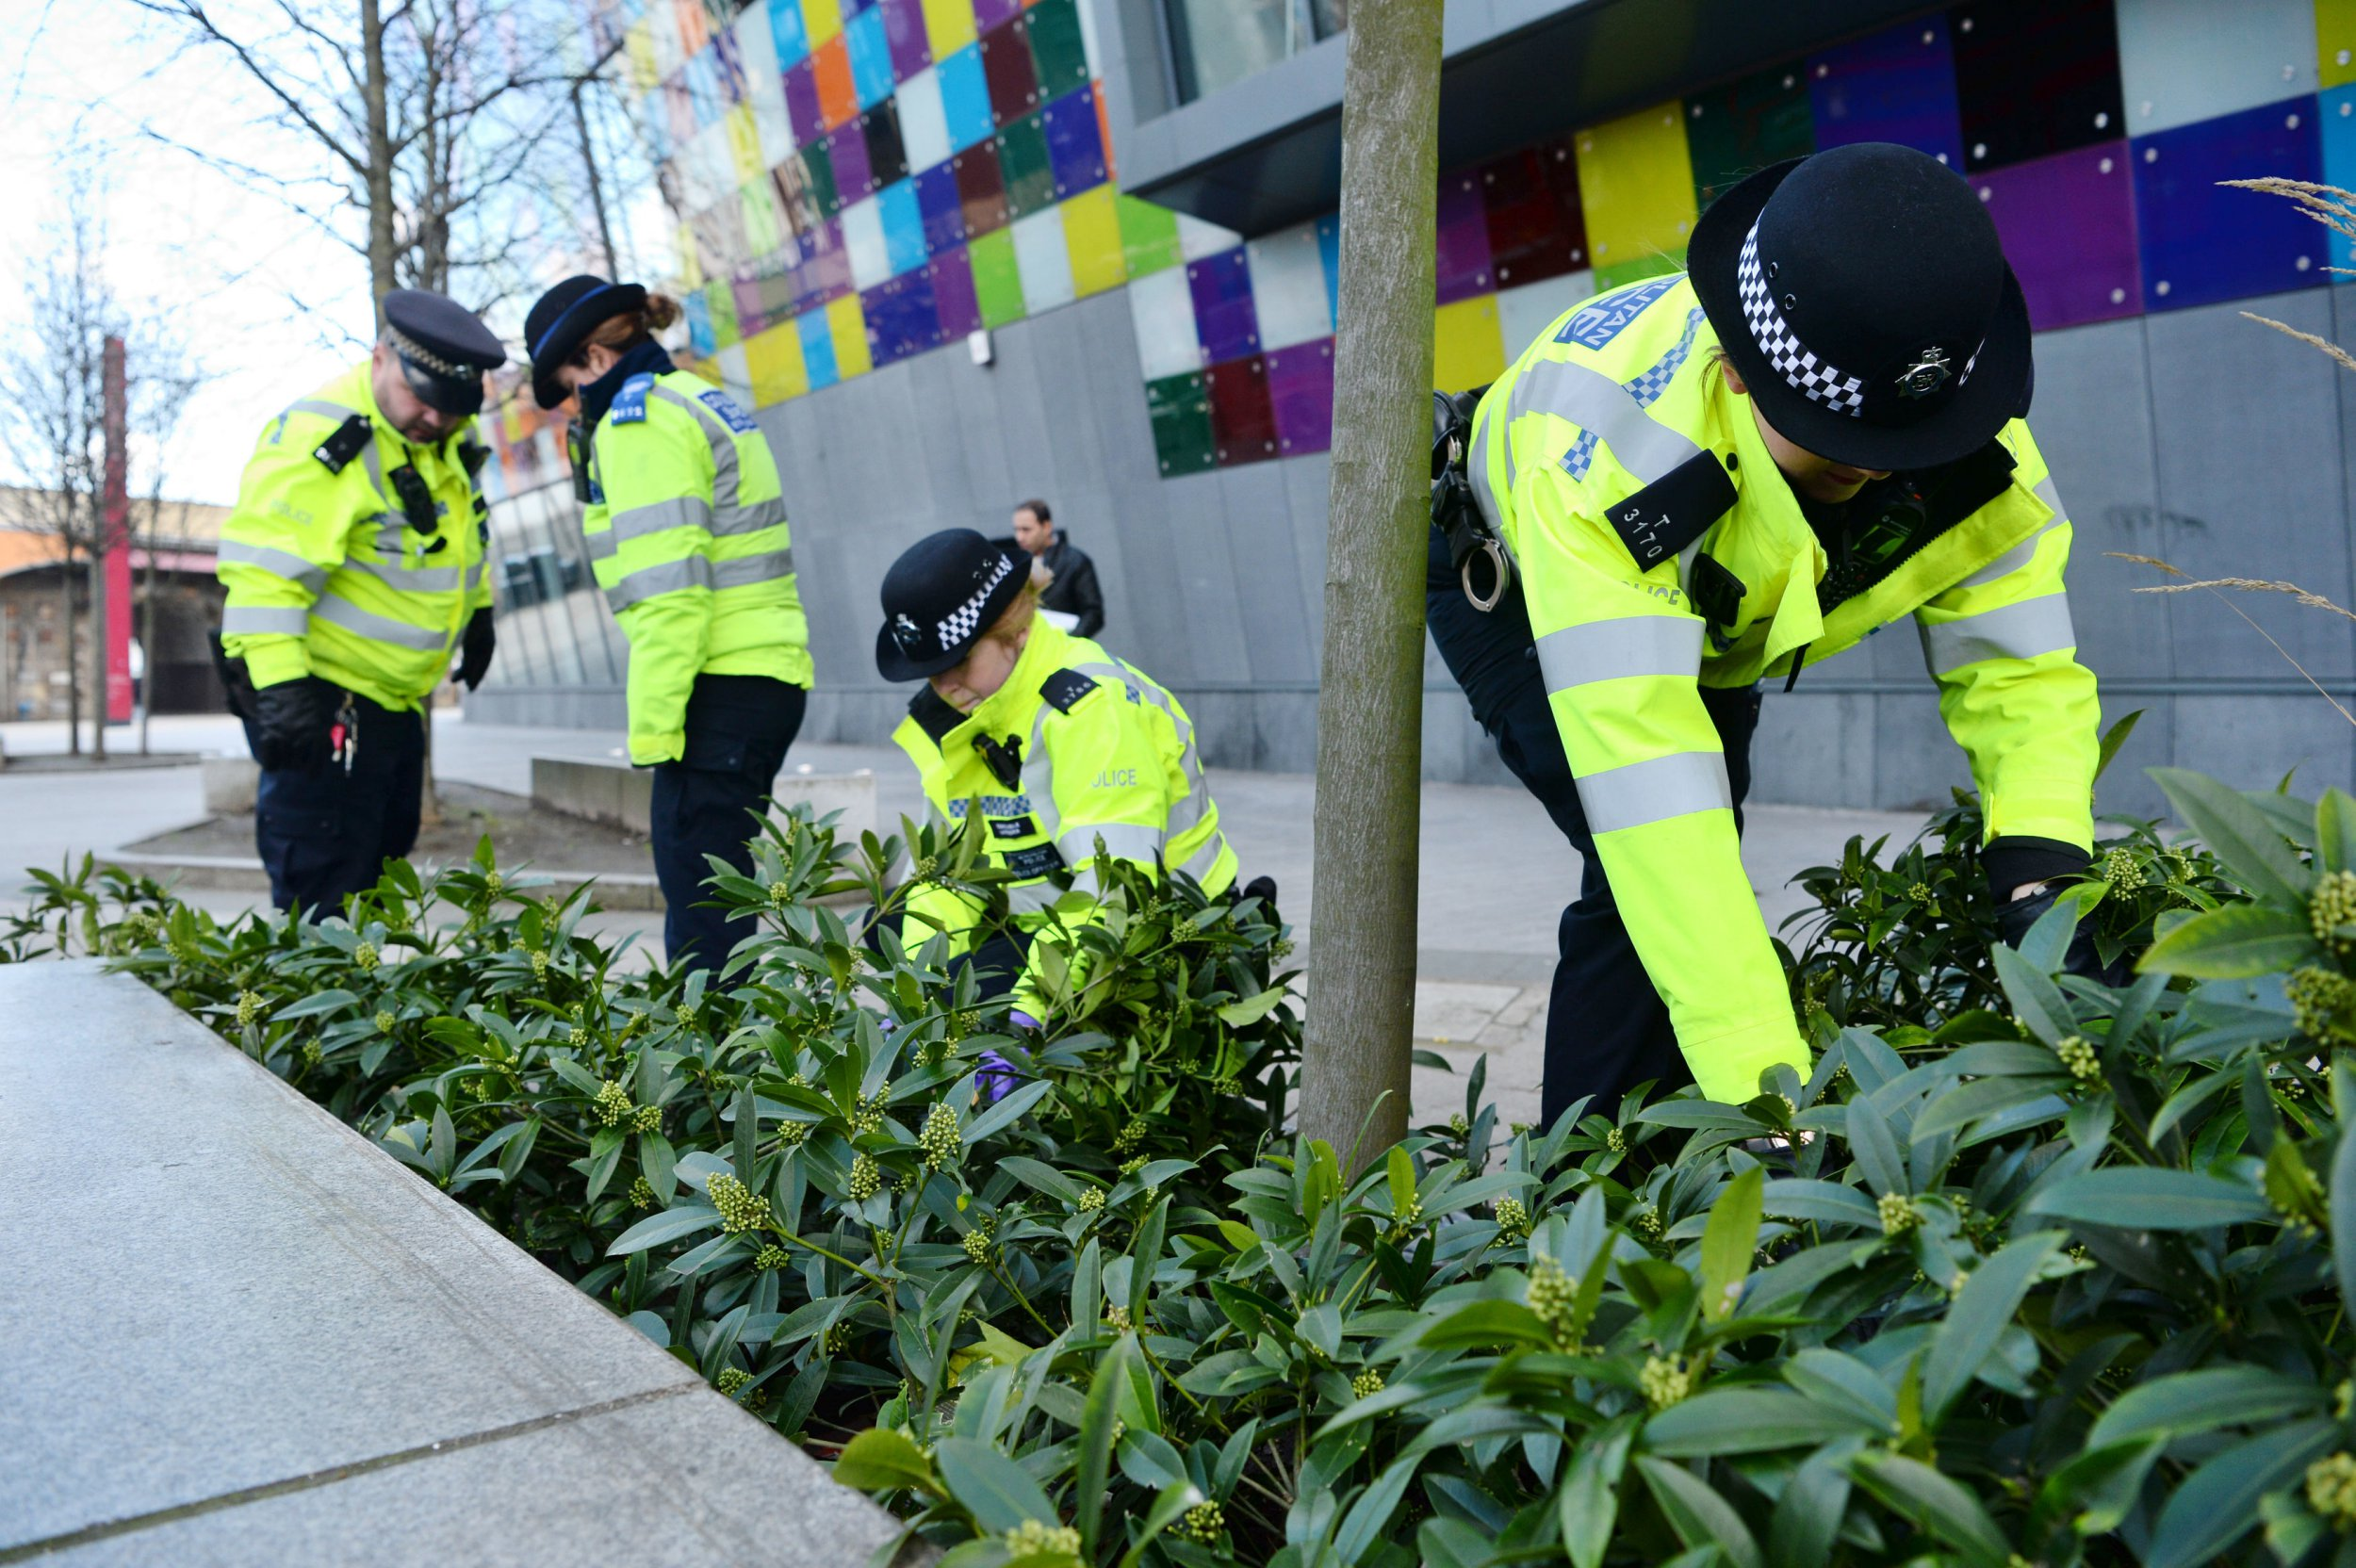 Officers from the Metropolitan Police search for knives outside the Glass Mill Centre in Lewisham, south London, as part of Operation Sceptre, which will see forces across England and Wales using surrender bins, stop-and-search and weapons sweeps in a concerted crackdown on knife crime. PRESS ASSOCIATION Photo. Picture date: Monday March 11, 2019. See PA story POLICE Knives. Photo credit should read: Kirsty O'Connor/PA Wire